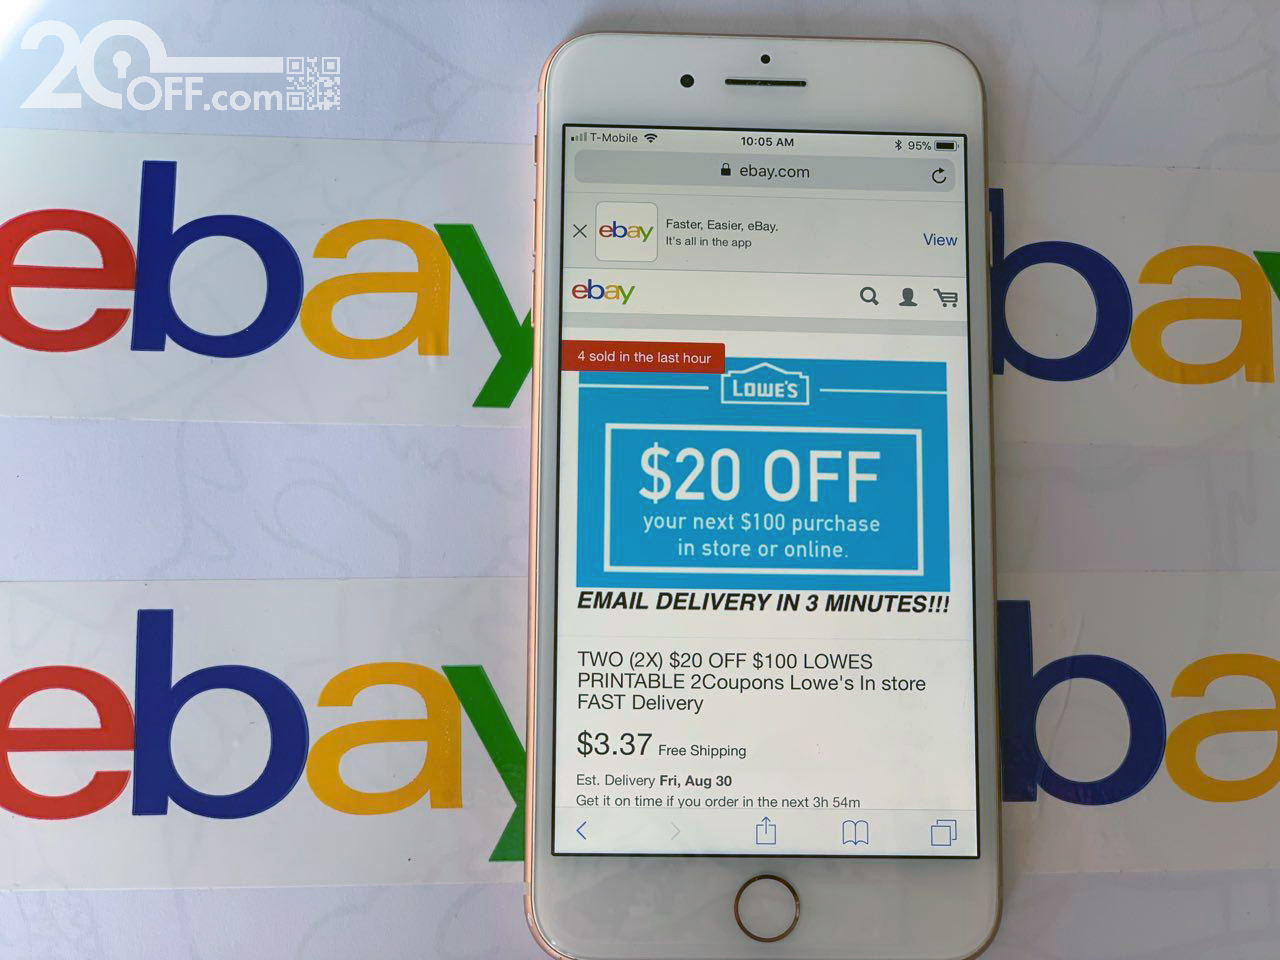 Lowe's ebay Coupons